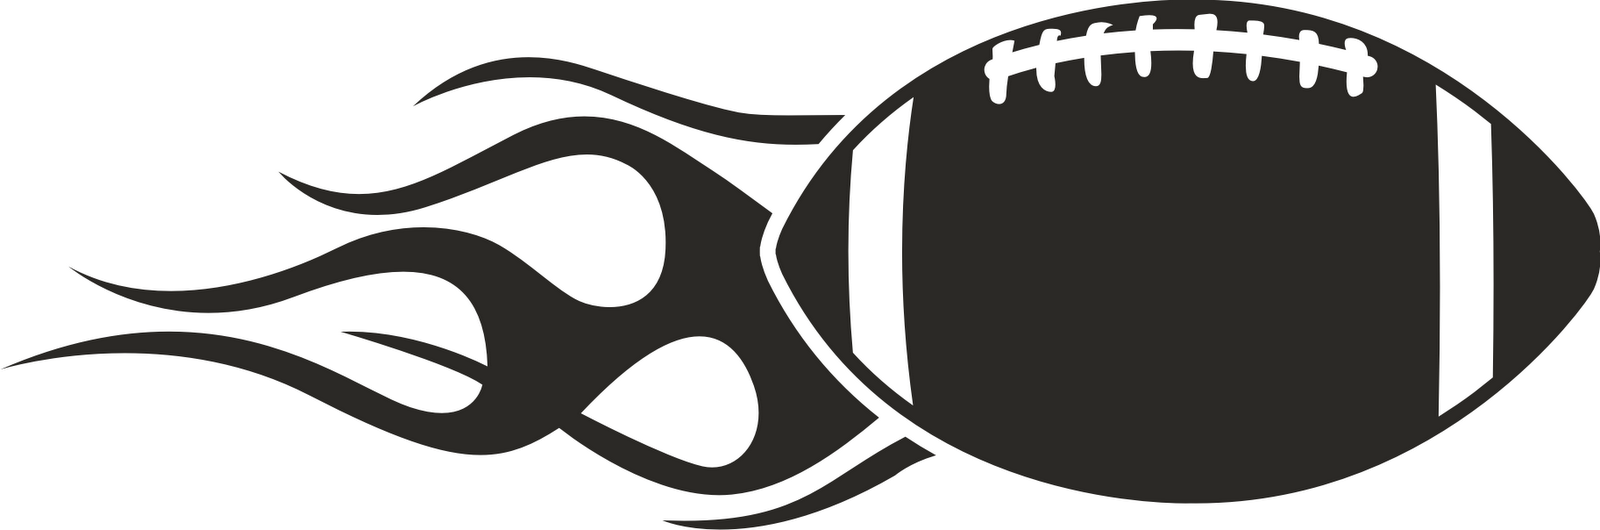 American Football Team Clipart Football 4 Png